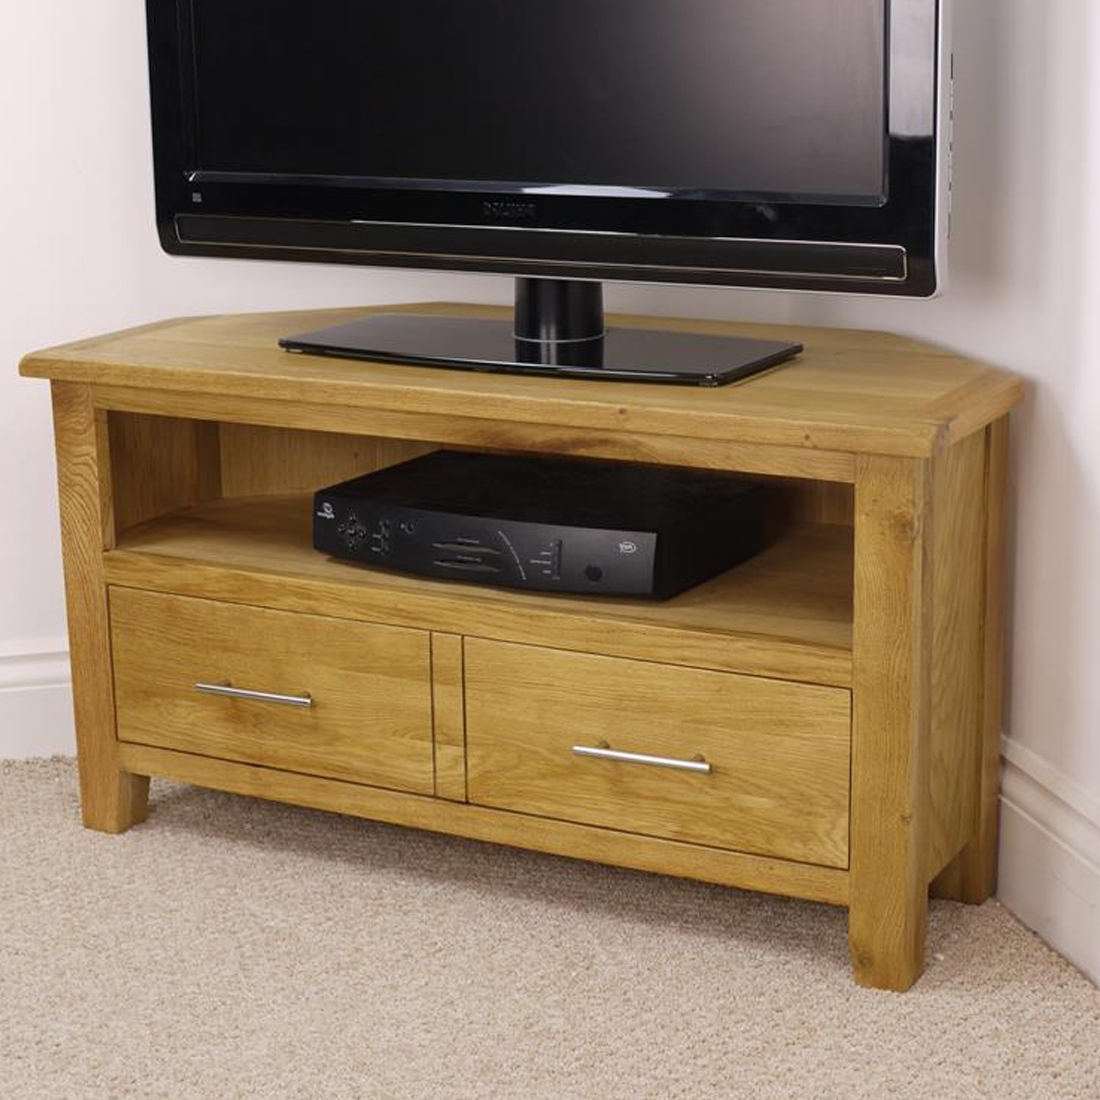 Most Current Real Wood Corner Tv Stands Intended For Corner Tv Stand And Its Benefits – Furnish Ideas (View 2 of 20)